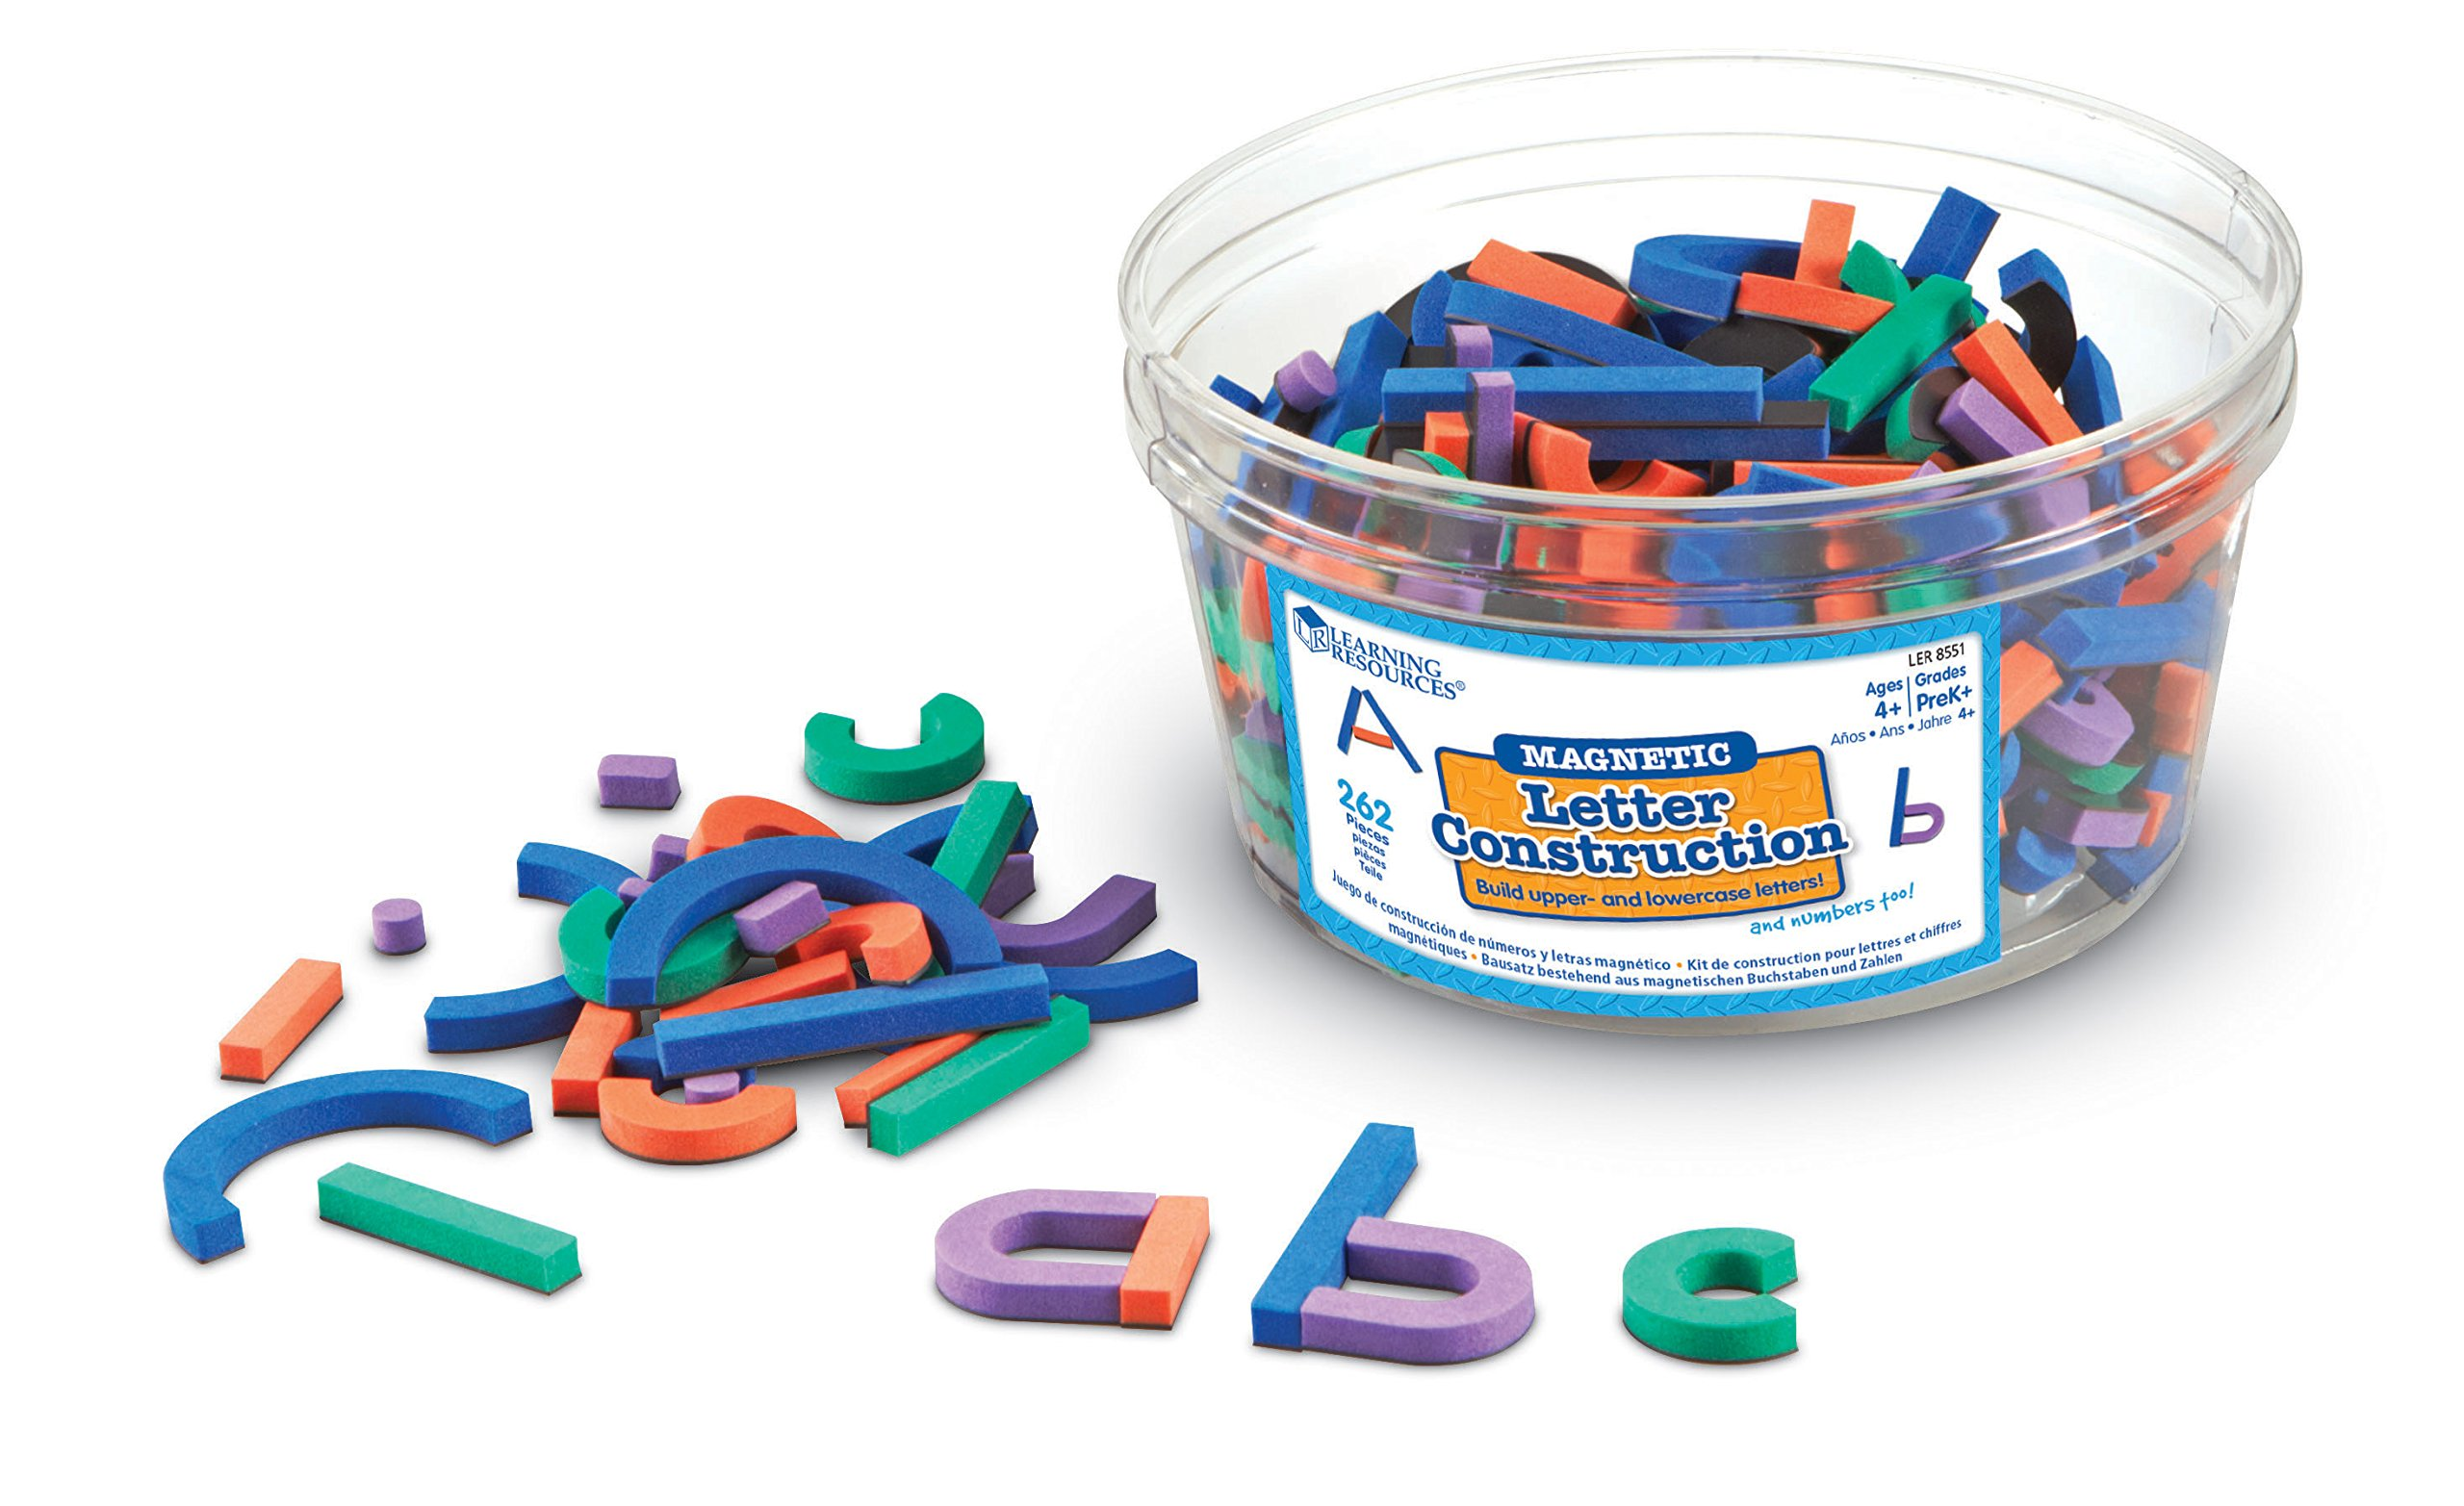 Learning Resources Magnetic Letter and Number Construction Set, Soft Foam Magnetic Shapes, Uppercase and Lowercase Letters, Teaching Aids, 262 Pieces, Grades Prek+, Ages 4+ by Learning Resources